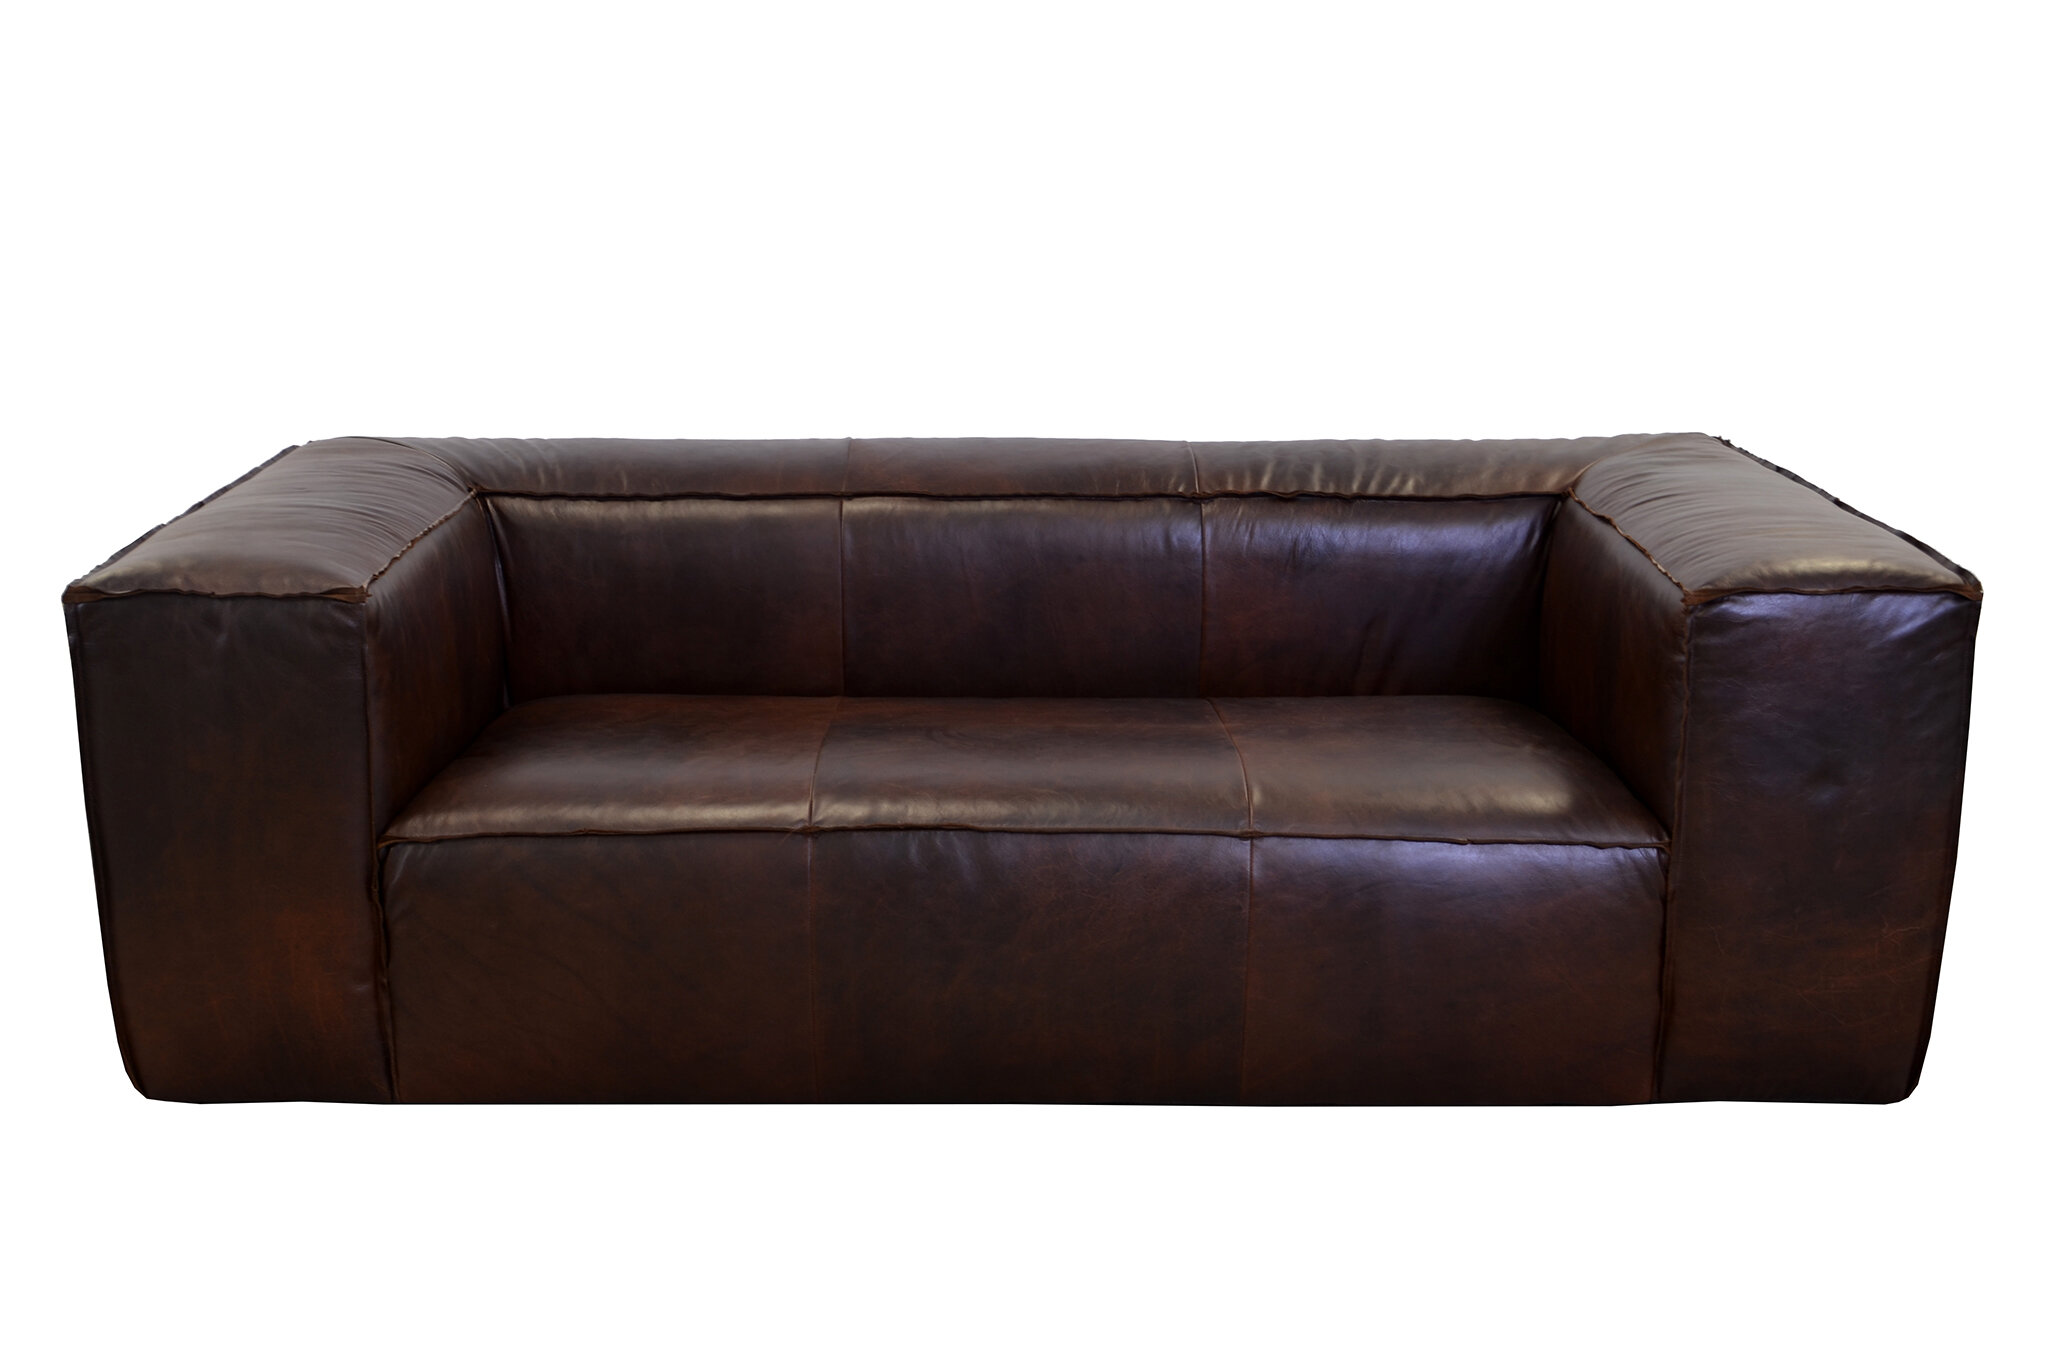 westland and birch lawton leather sofa wayfair - Sofa Leather